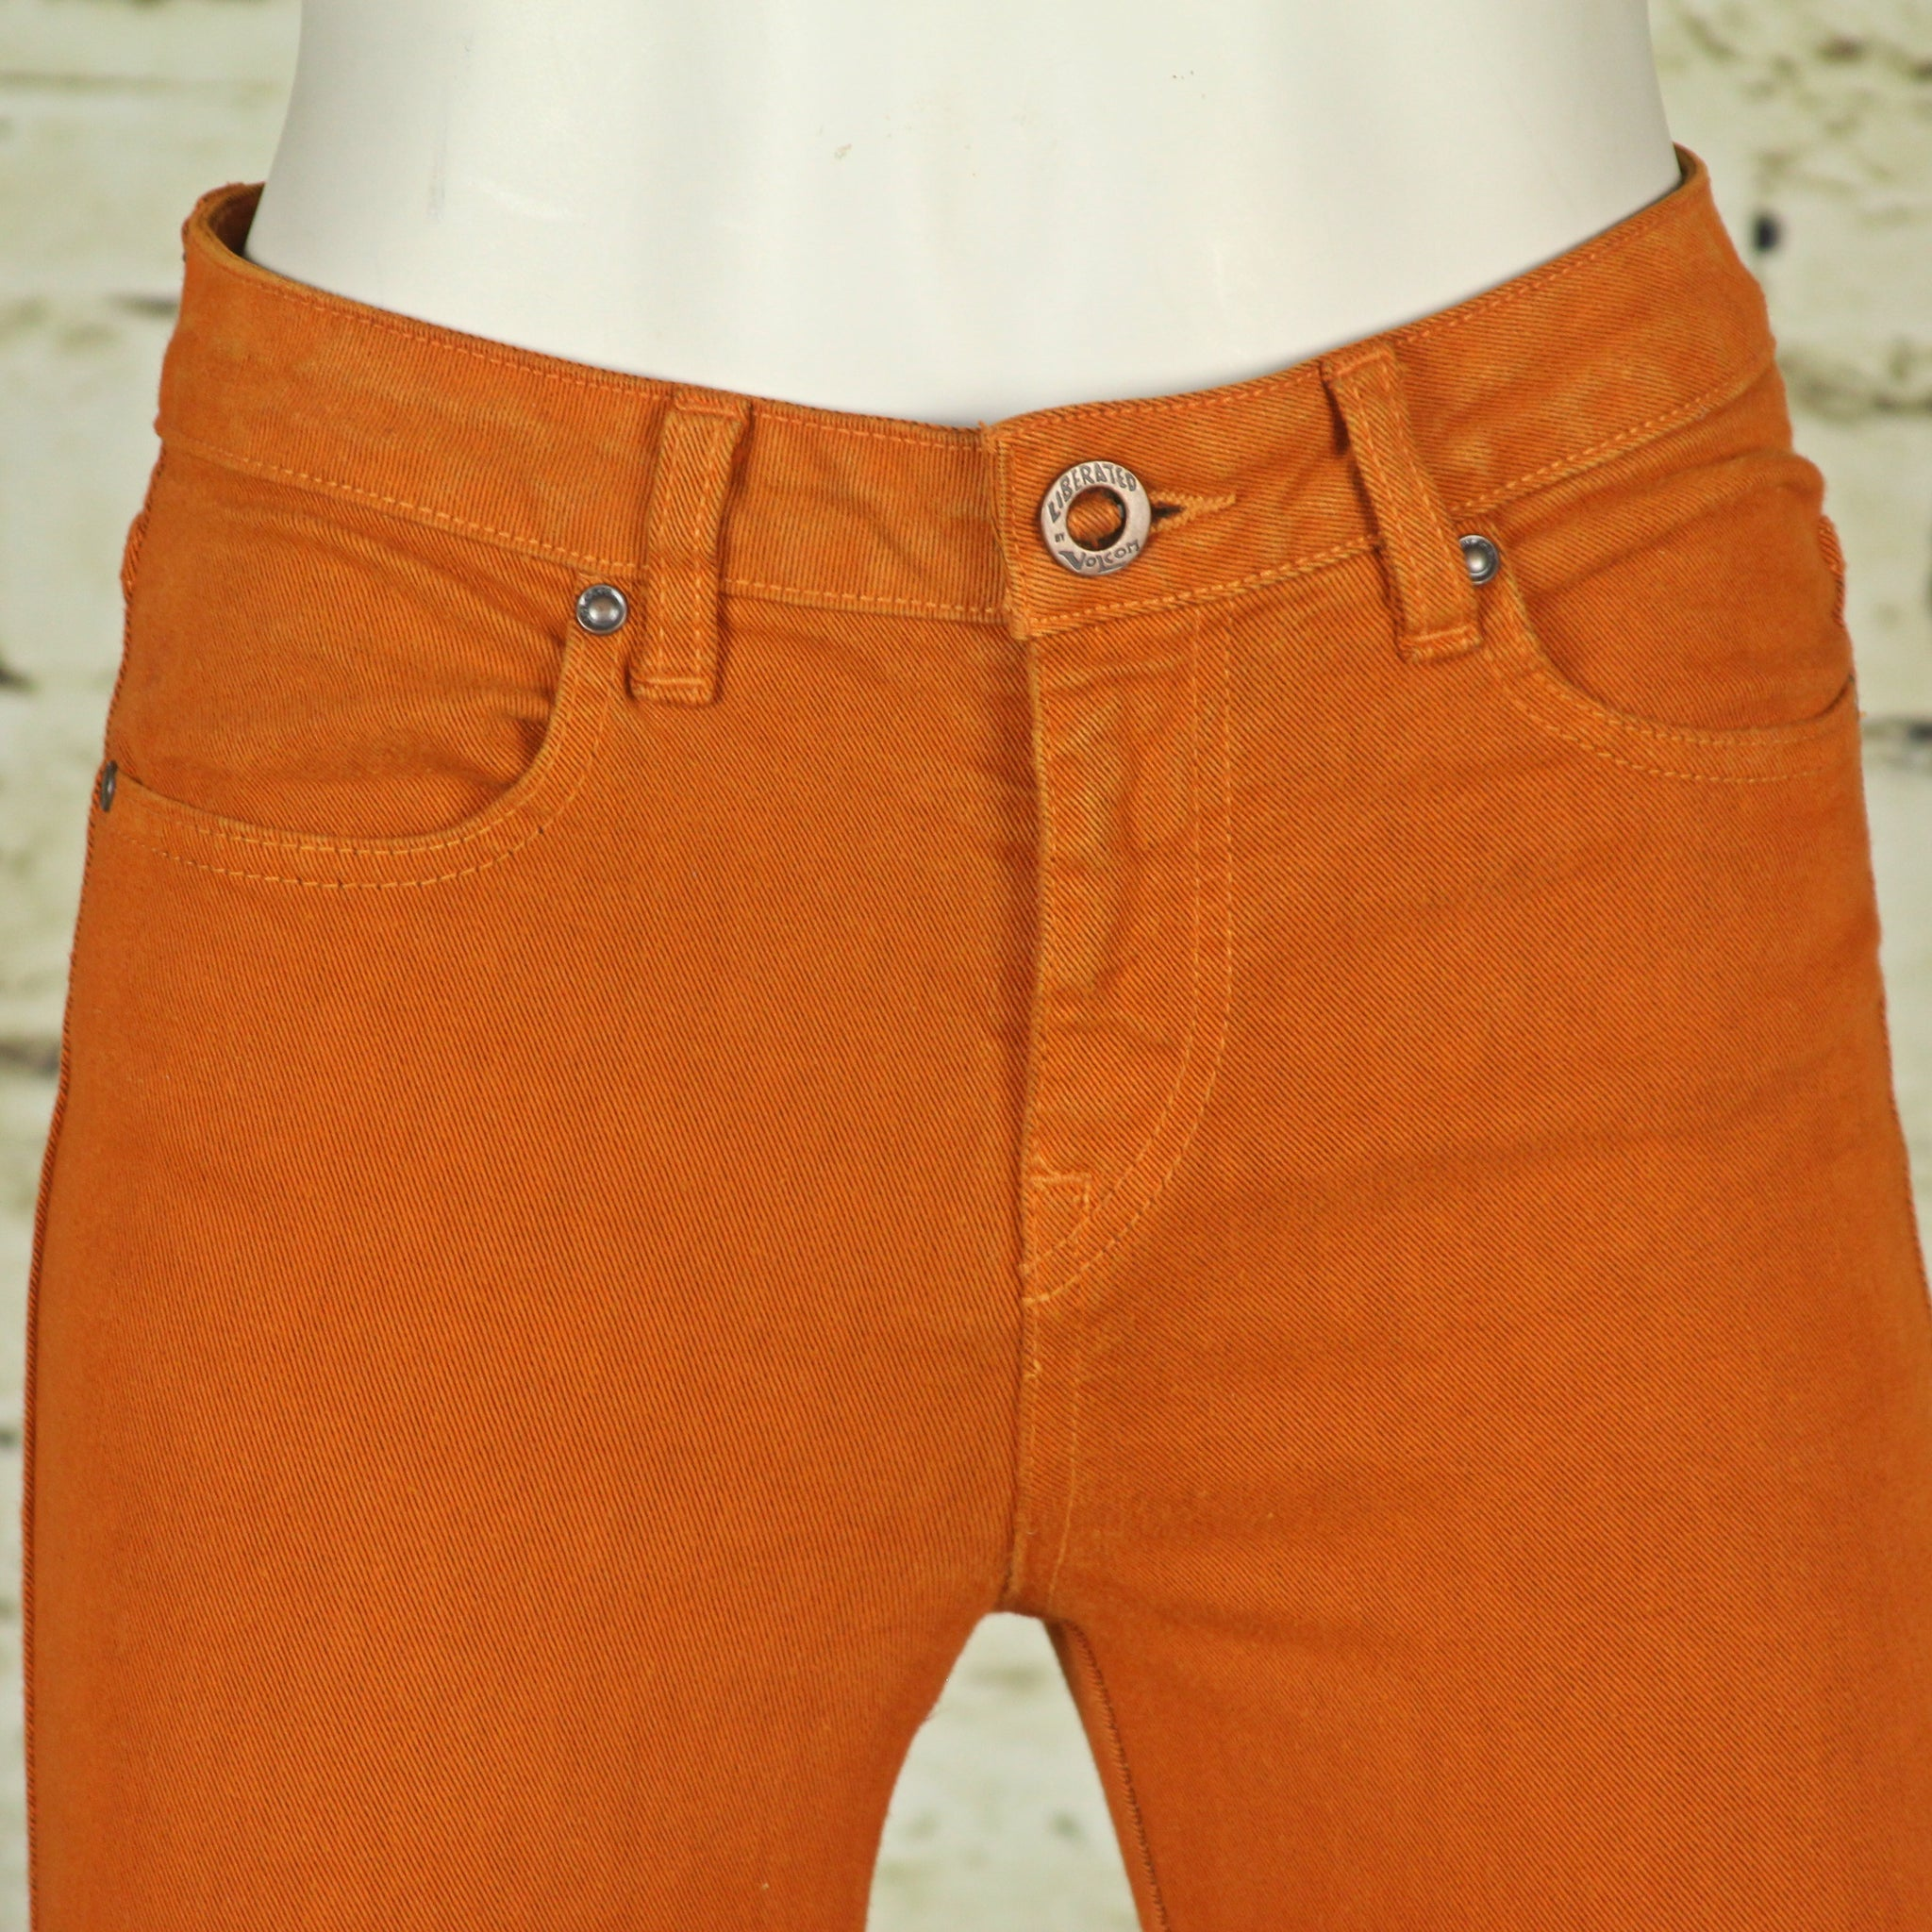 f0e4bfe4df6 ... Load image into Gallery viewer, Volcom Orange High Waist Flare Fit  Women' ...